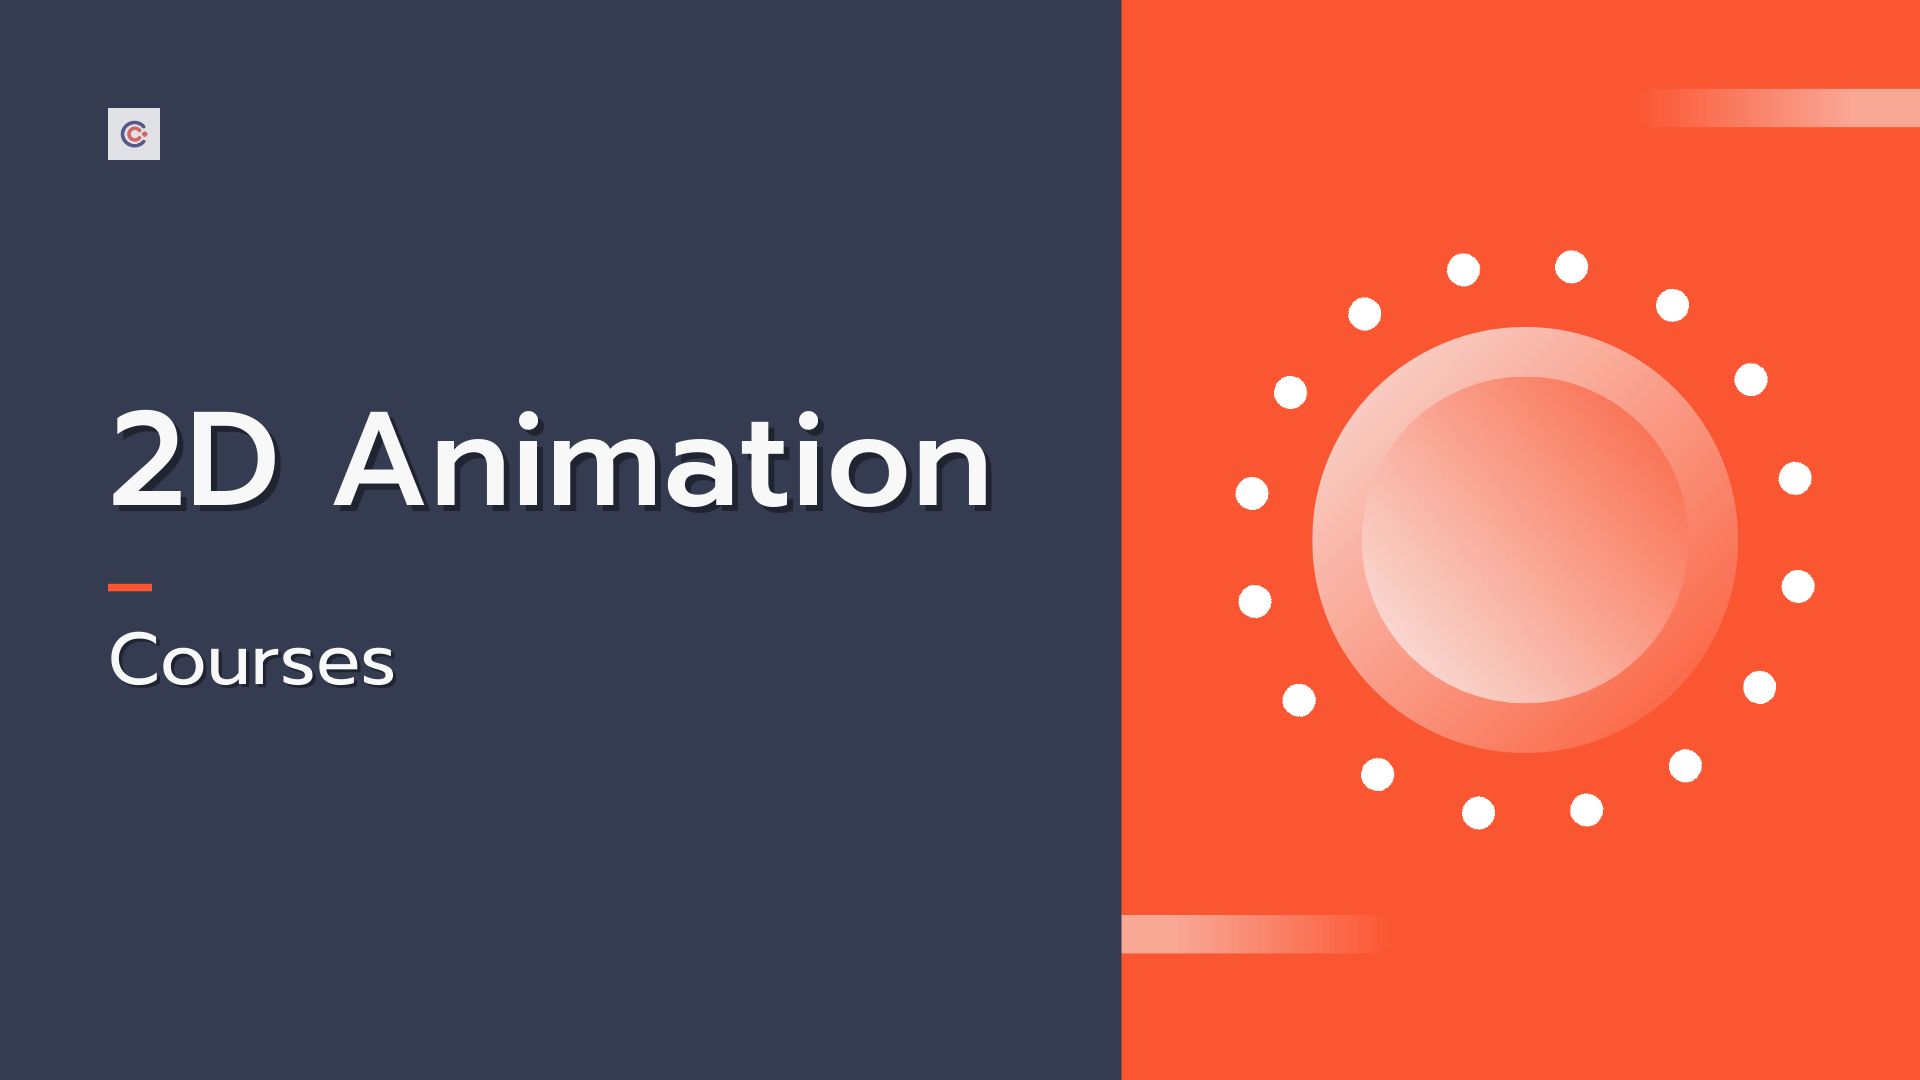 7 Best 2D Animation Courses - Learn 2D Animation Online